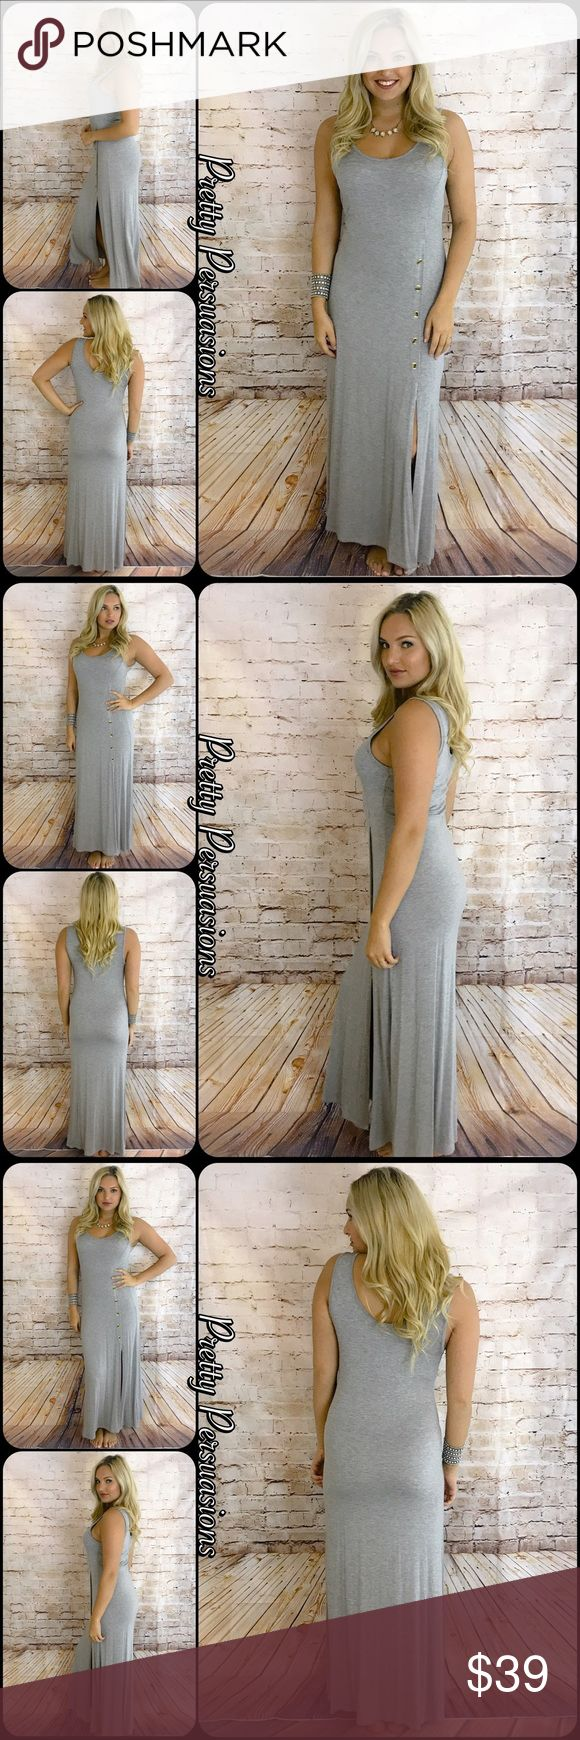 """NWT Heather Gray Button Slit Jersey Maxi Dress NWT Heather Gray Button Slit Jersey Maxi Dress   Available in size: Medium  Length: 56"""" Bust: 36"""" Hips: 40""""  95% Rayon; 5% Spandex   Features:  • relaxed, easy fit • very soft material with stretch • scooped neckline  • 5 button detailing at top of slit on left side of dress starting from the hip down • sleeveless  Bundle discounts available  No pp or trades   Item # 1/106120390GMD heather gray button slit maxi jersey soft stretch Pretty…"""